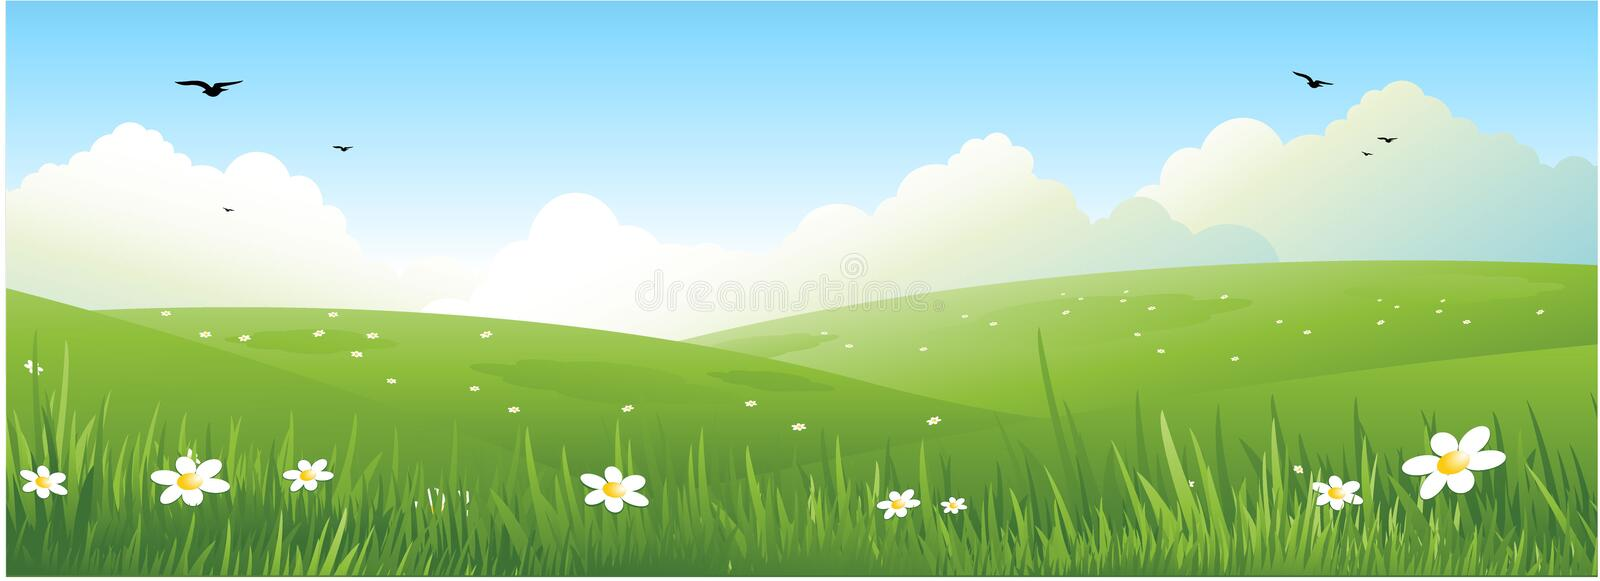 Nature landscape background. Nature landscape. Summer travel landscape. Spring background